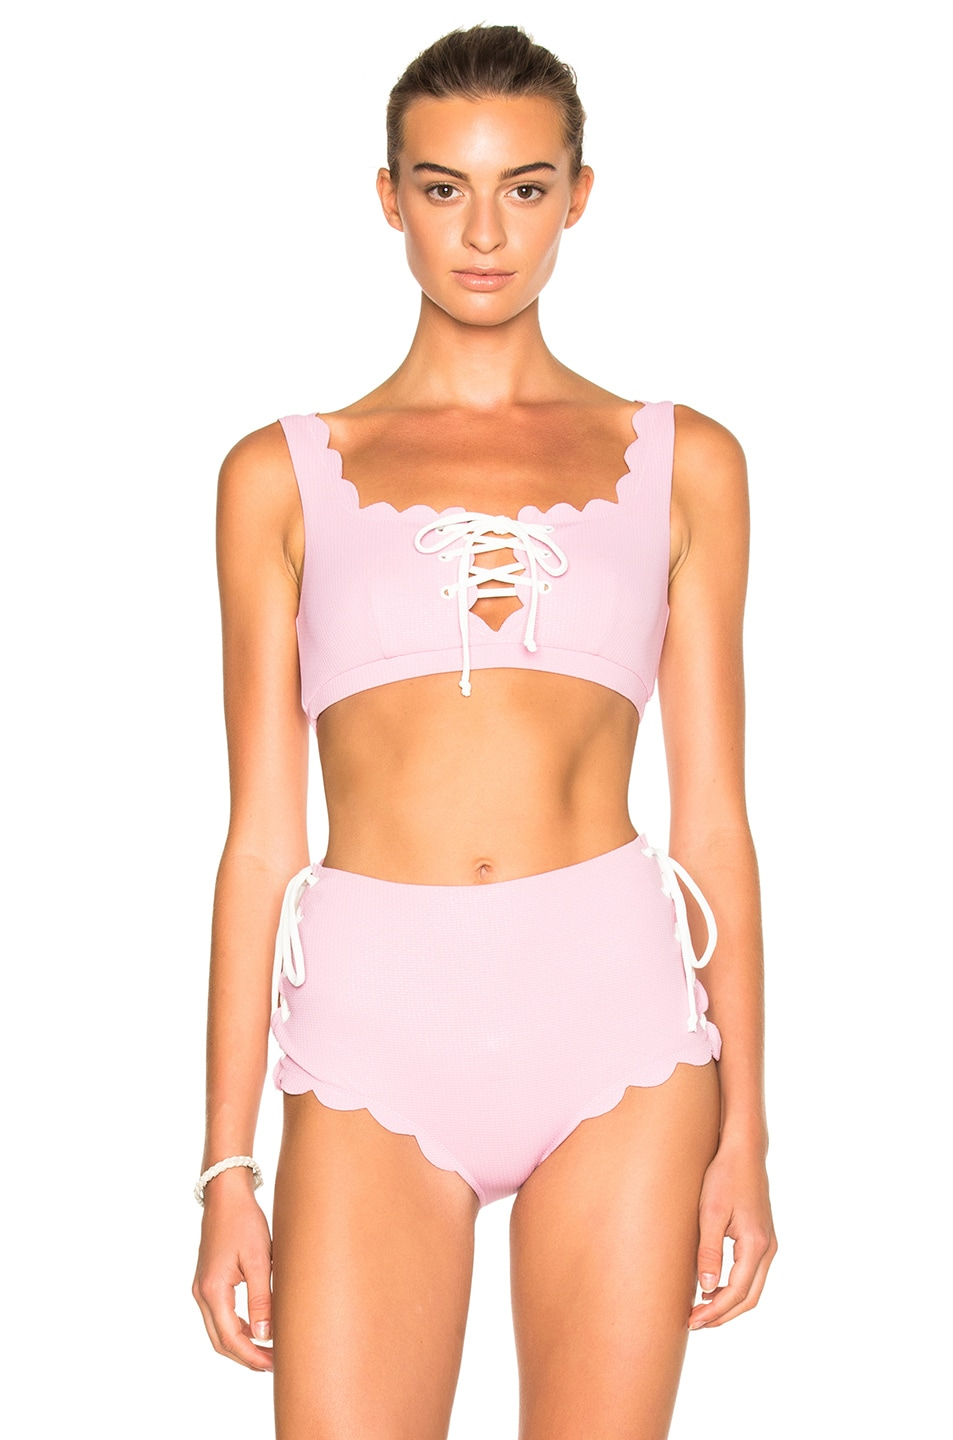 Image 1 of Marysia Swim FWRD Exclusive Palm Springs Lace Up Bikini Top in Pale Pink